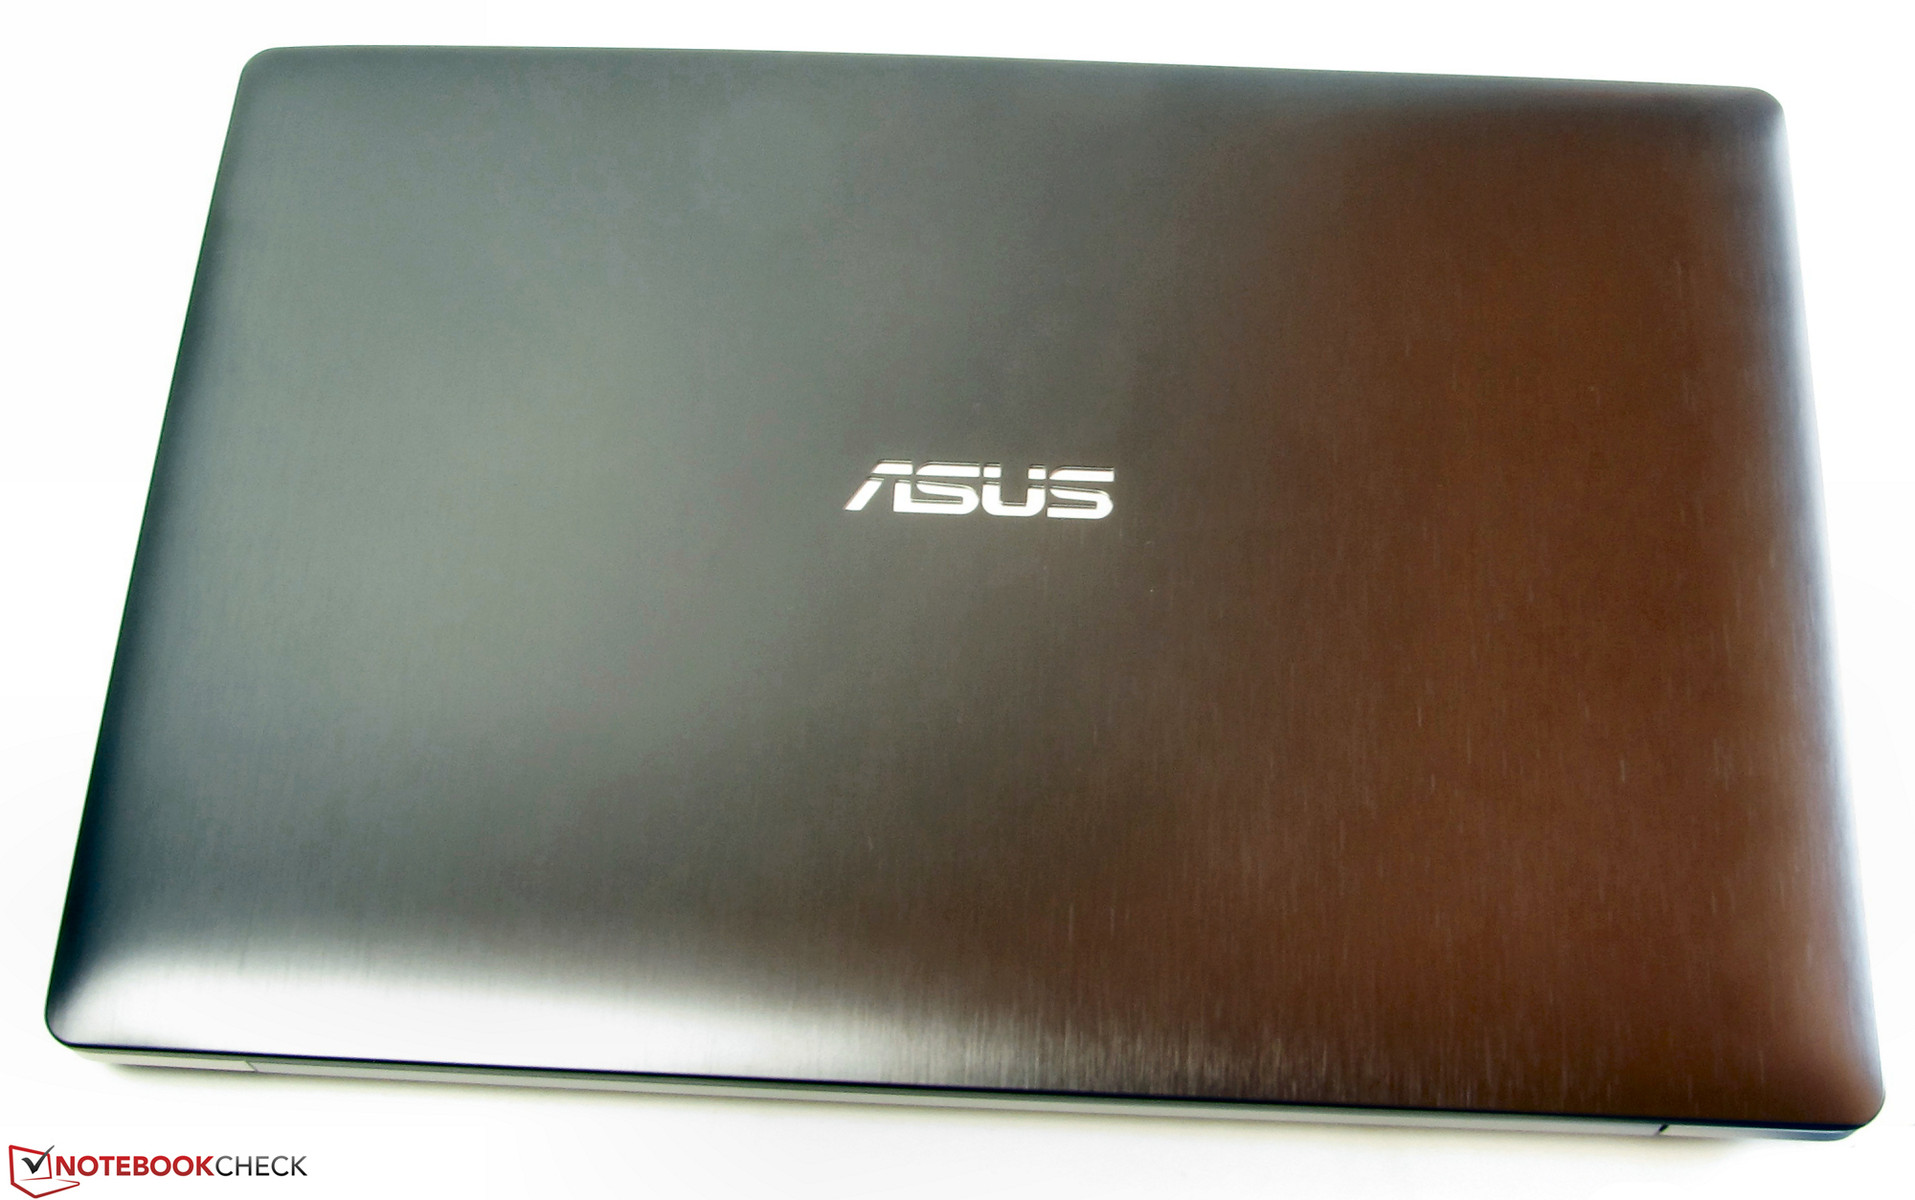 ASUS N46JV ATHEROS WLAN DRIVERS FOR WINDOWS XP